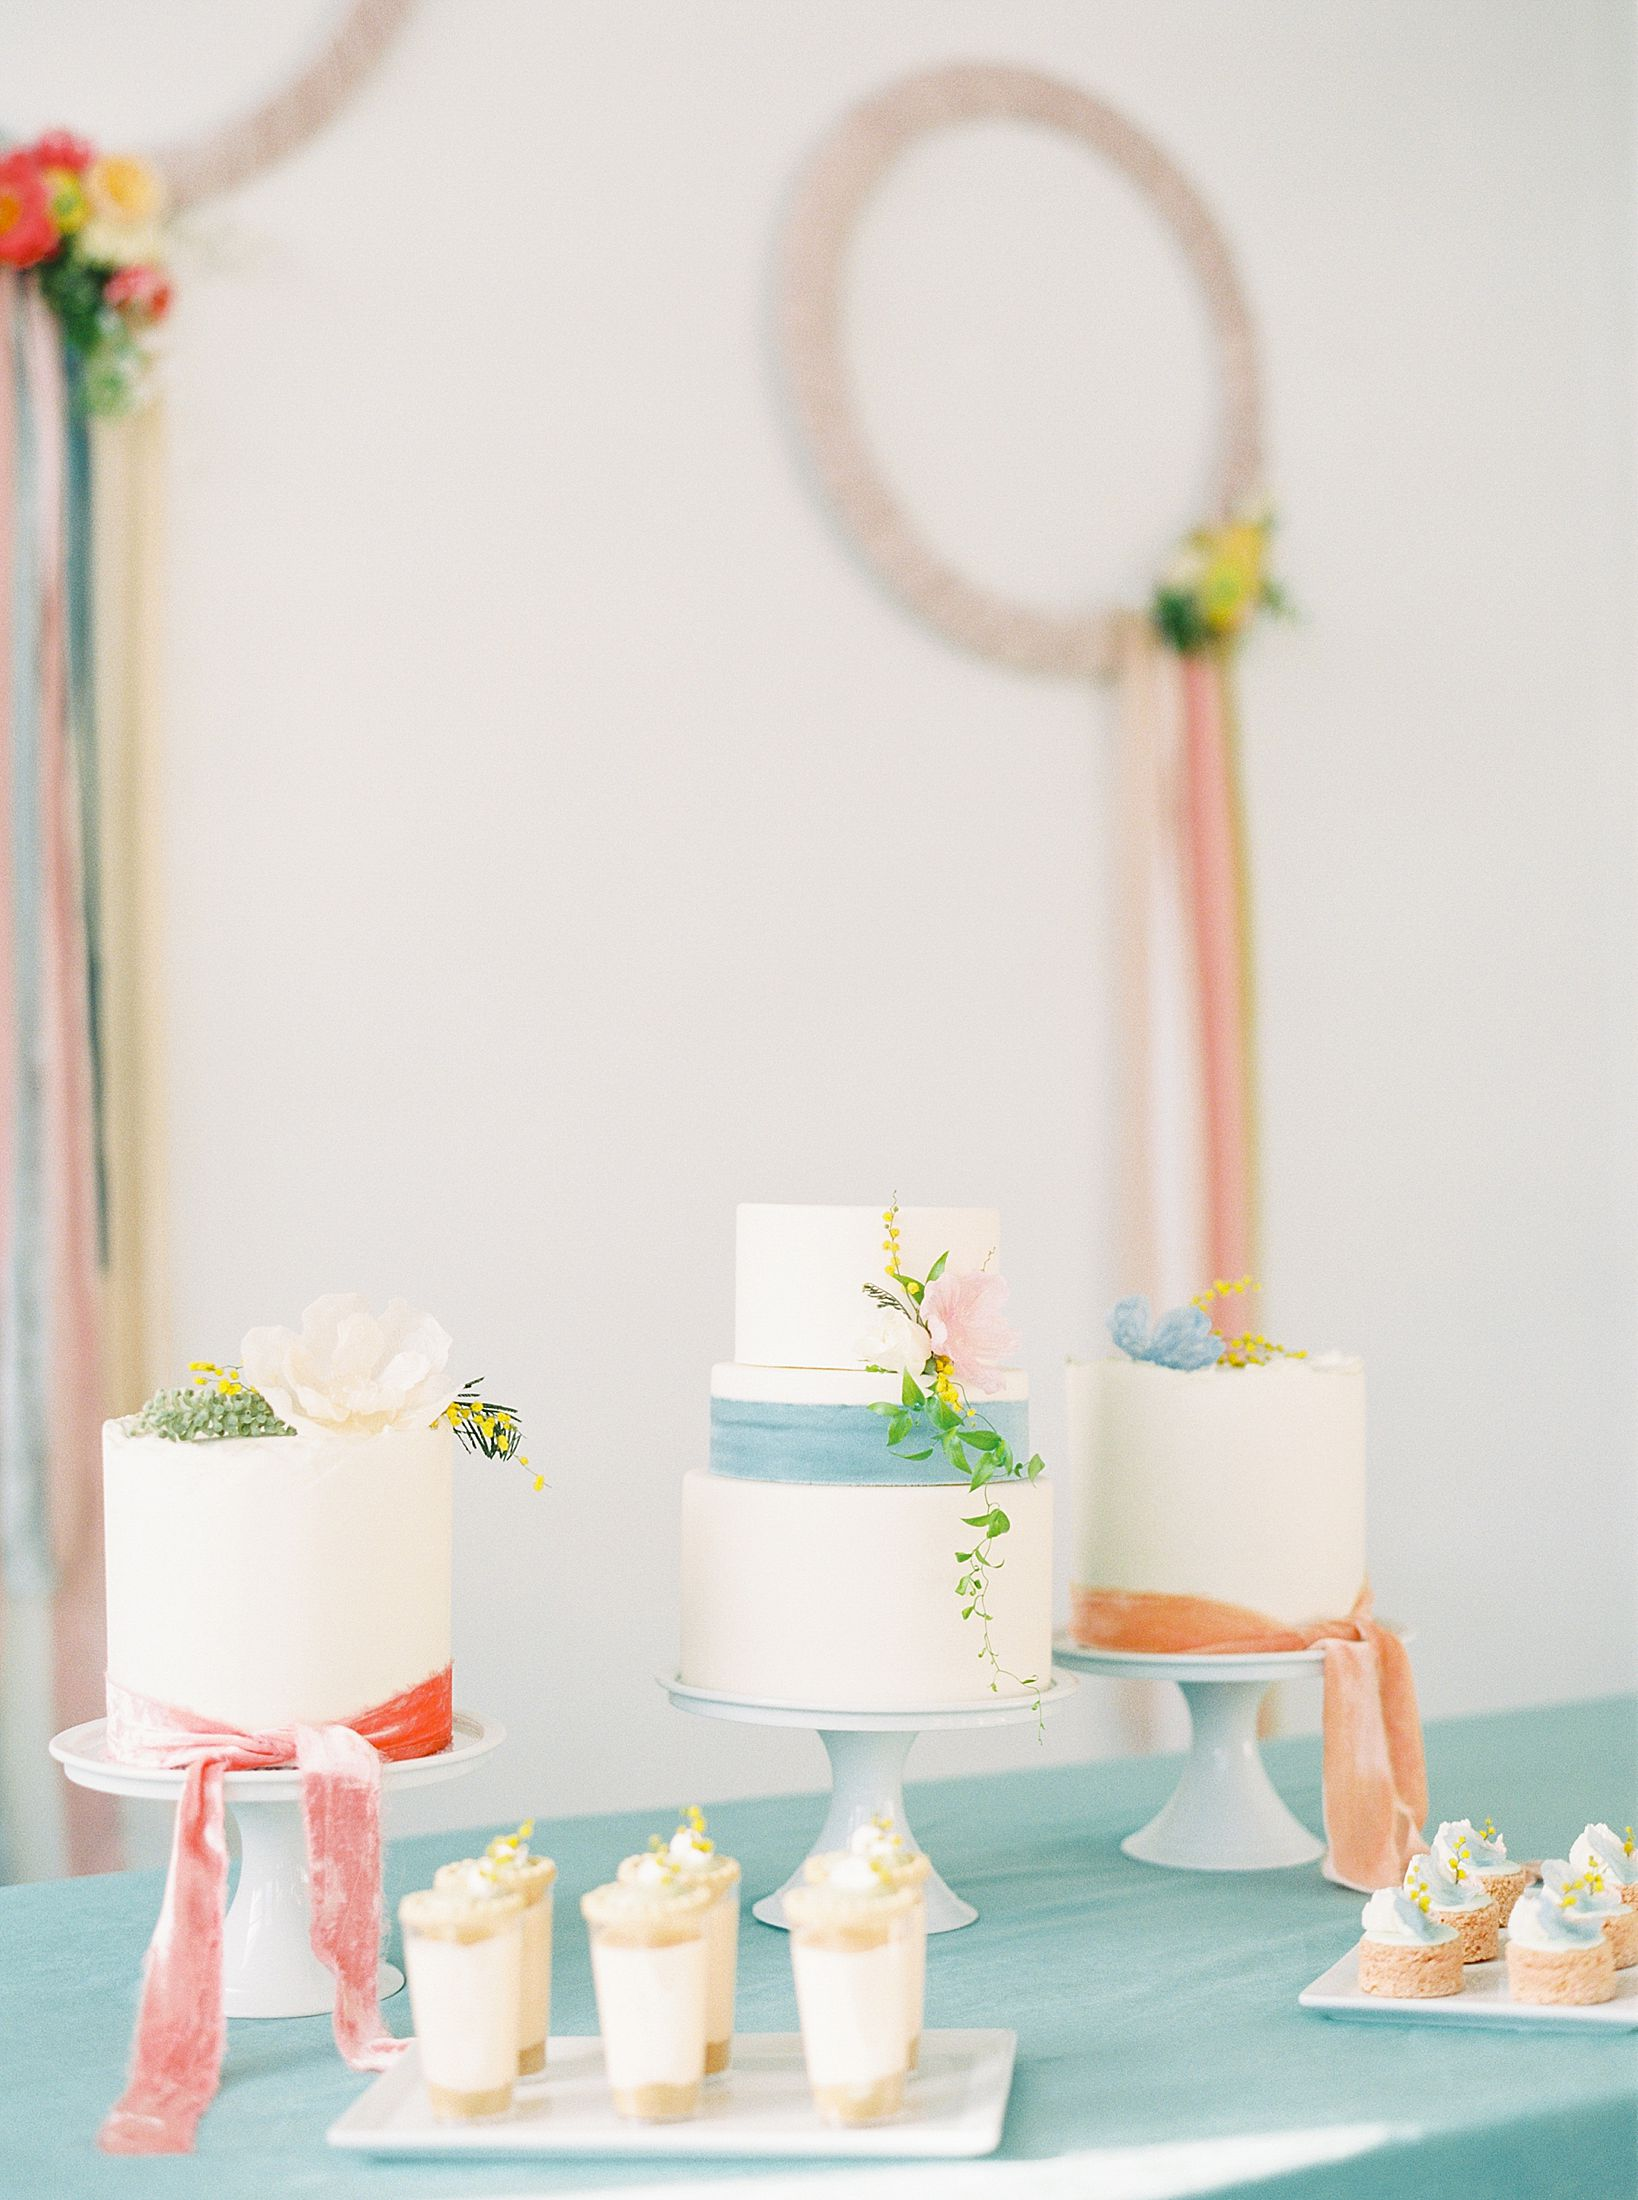 Bay Area Spring Wedding Inspiration - Ashley Baumgartner - Inspired By This - Party Crush Studio and Lens of Lenox Videography - Bay Area Wedding Photography_0042.jpg